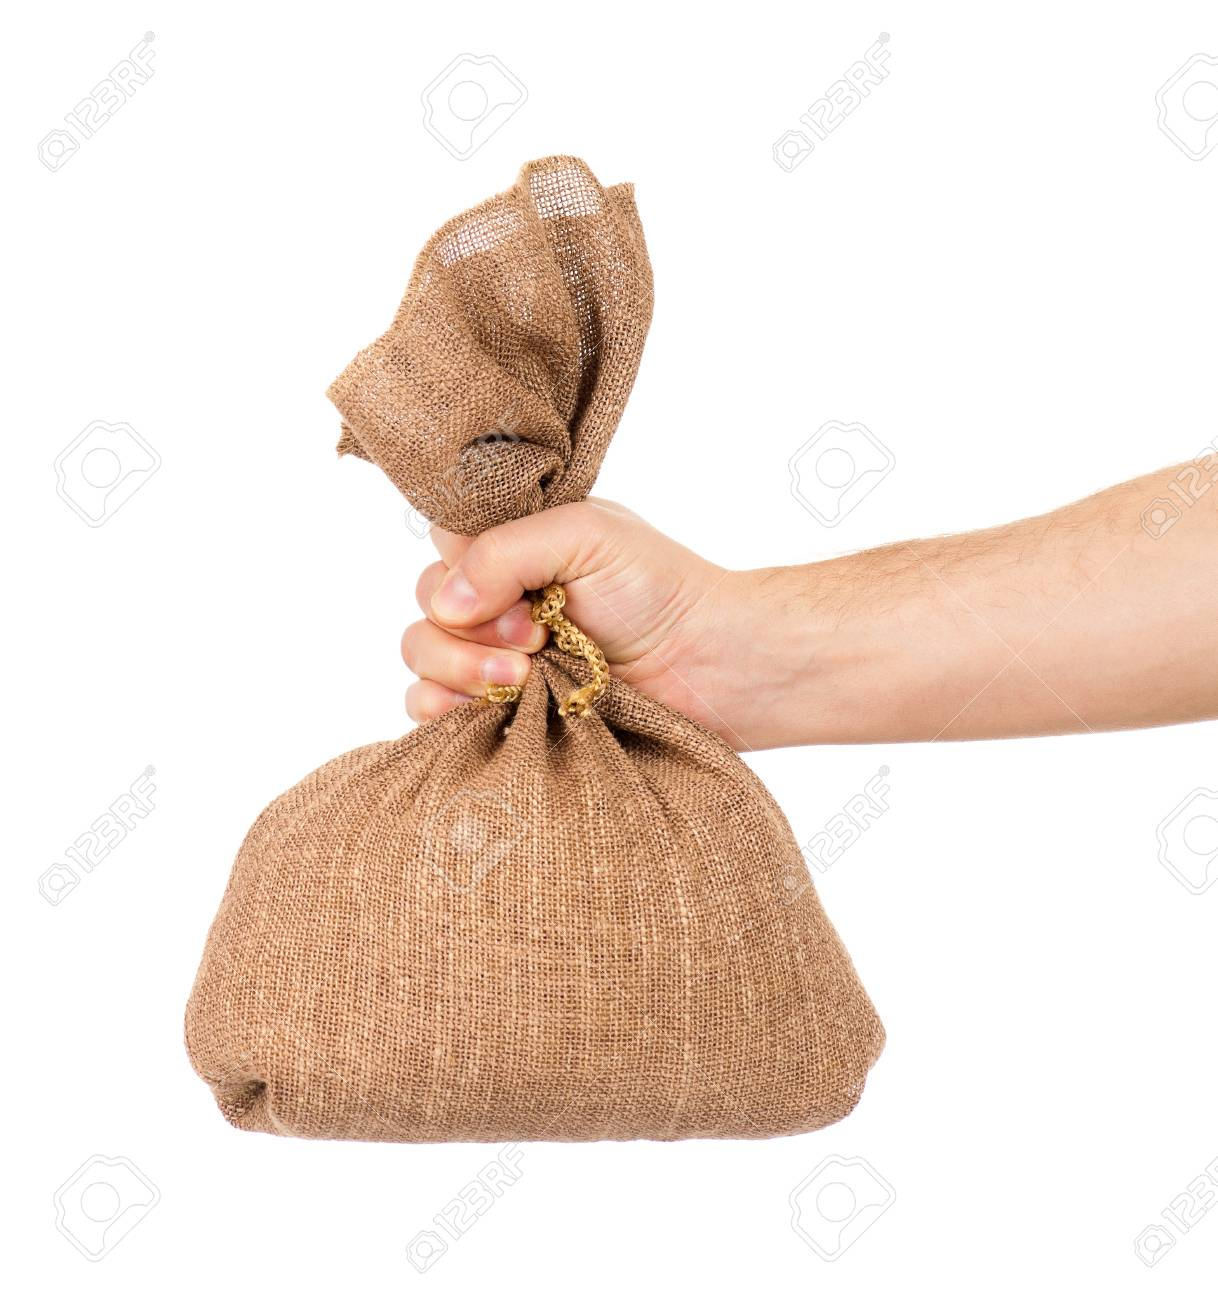 Man hand with small bag on white background Stock Photo - 19252999